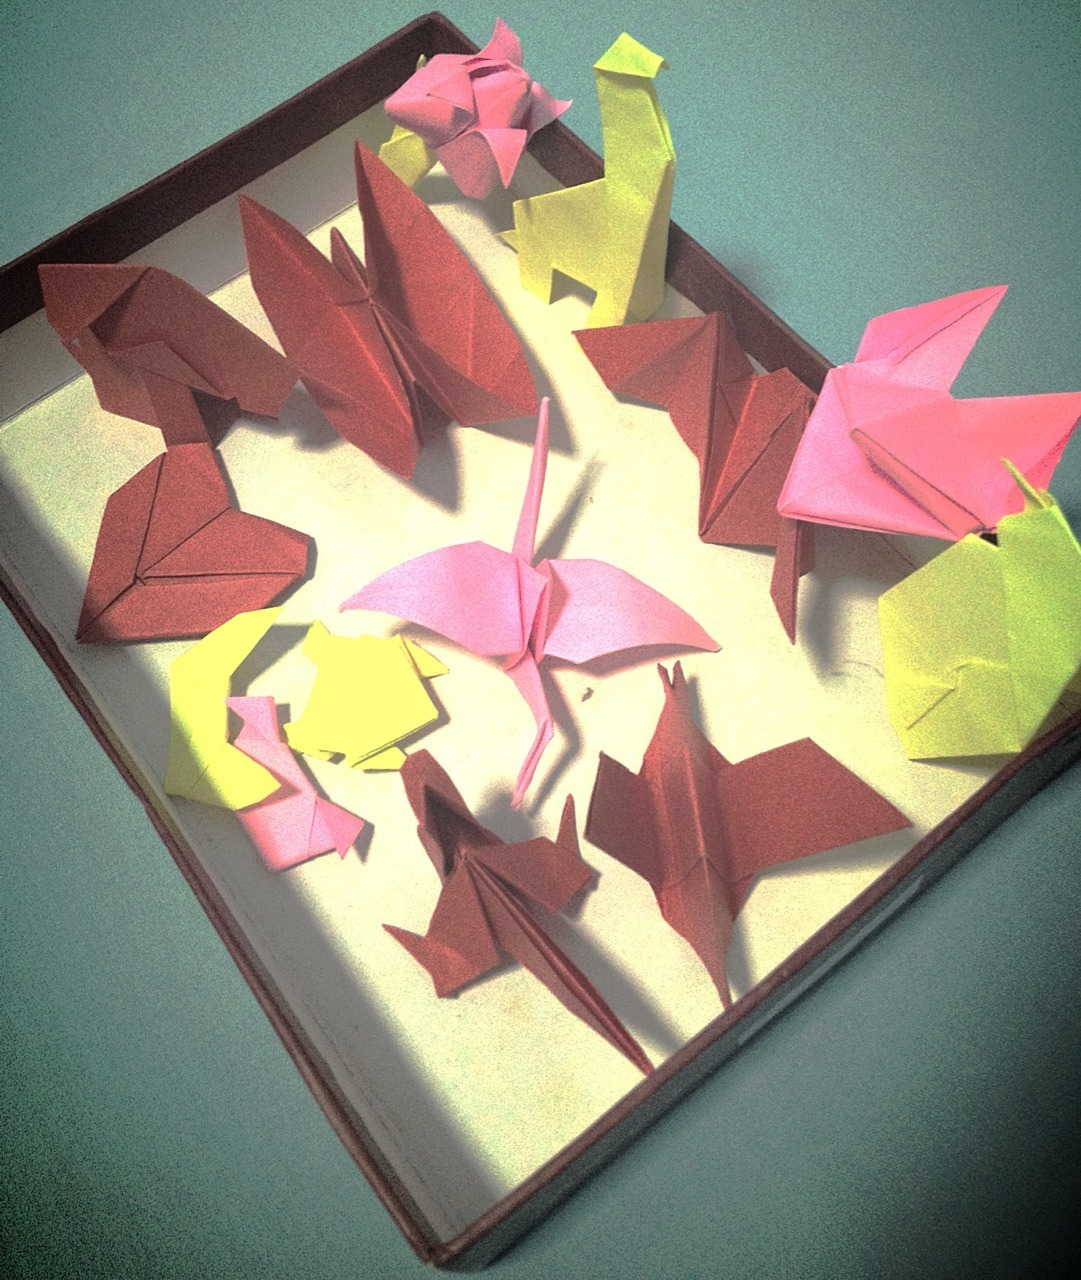 Having my very own origami party. :)